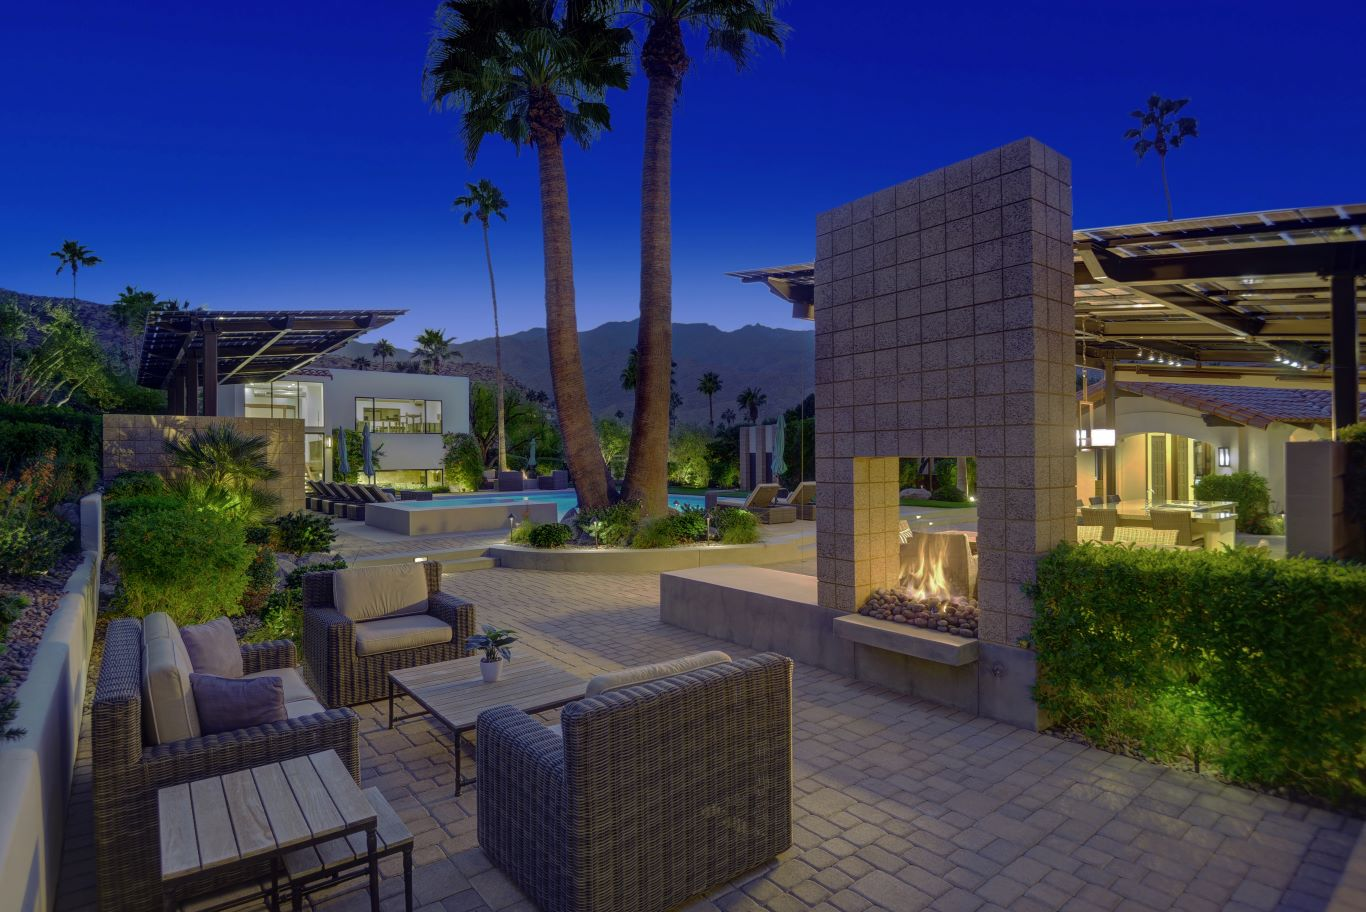 Outdoor Fireplace Seating - Night View